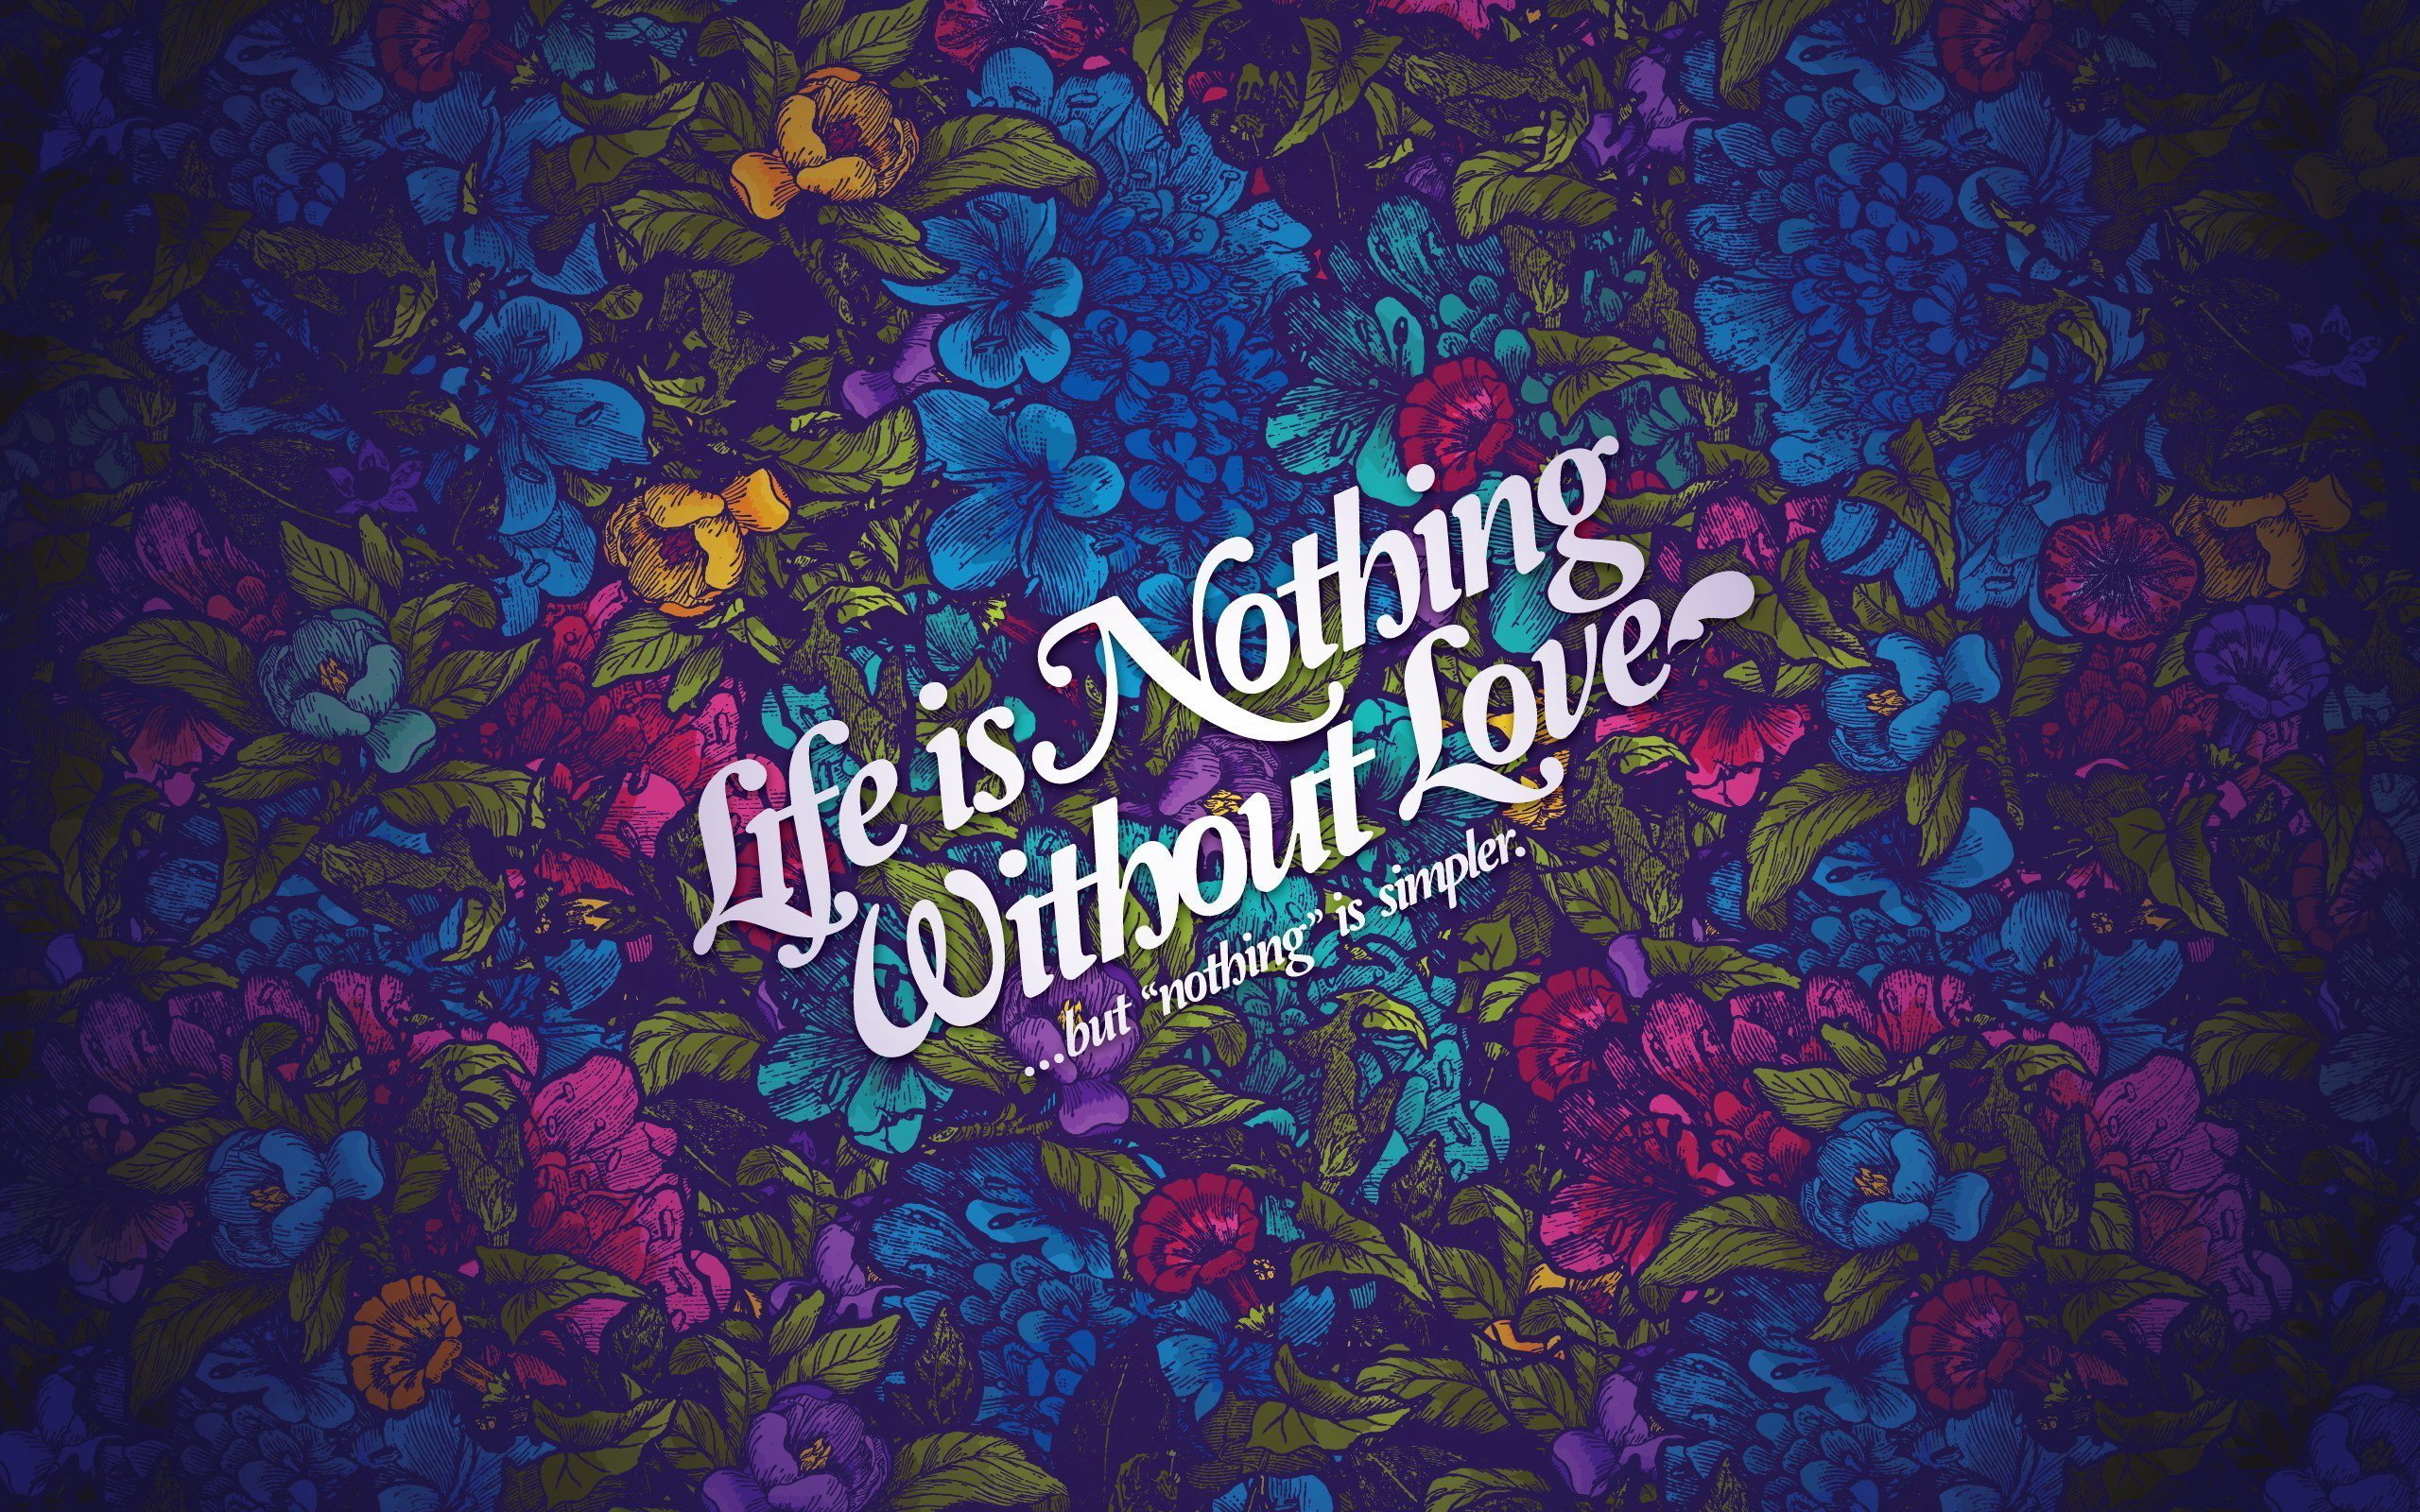 childhood Love Wallpaper : Life Without Love Wallpaper #4117 Wallpaper WallDiskPaper